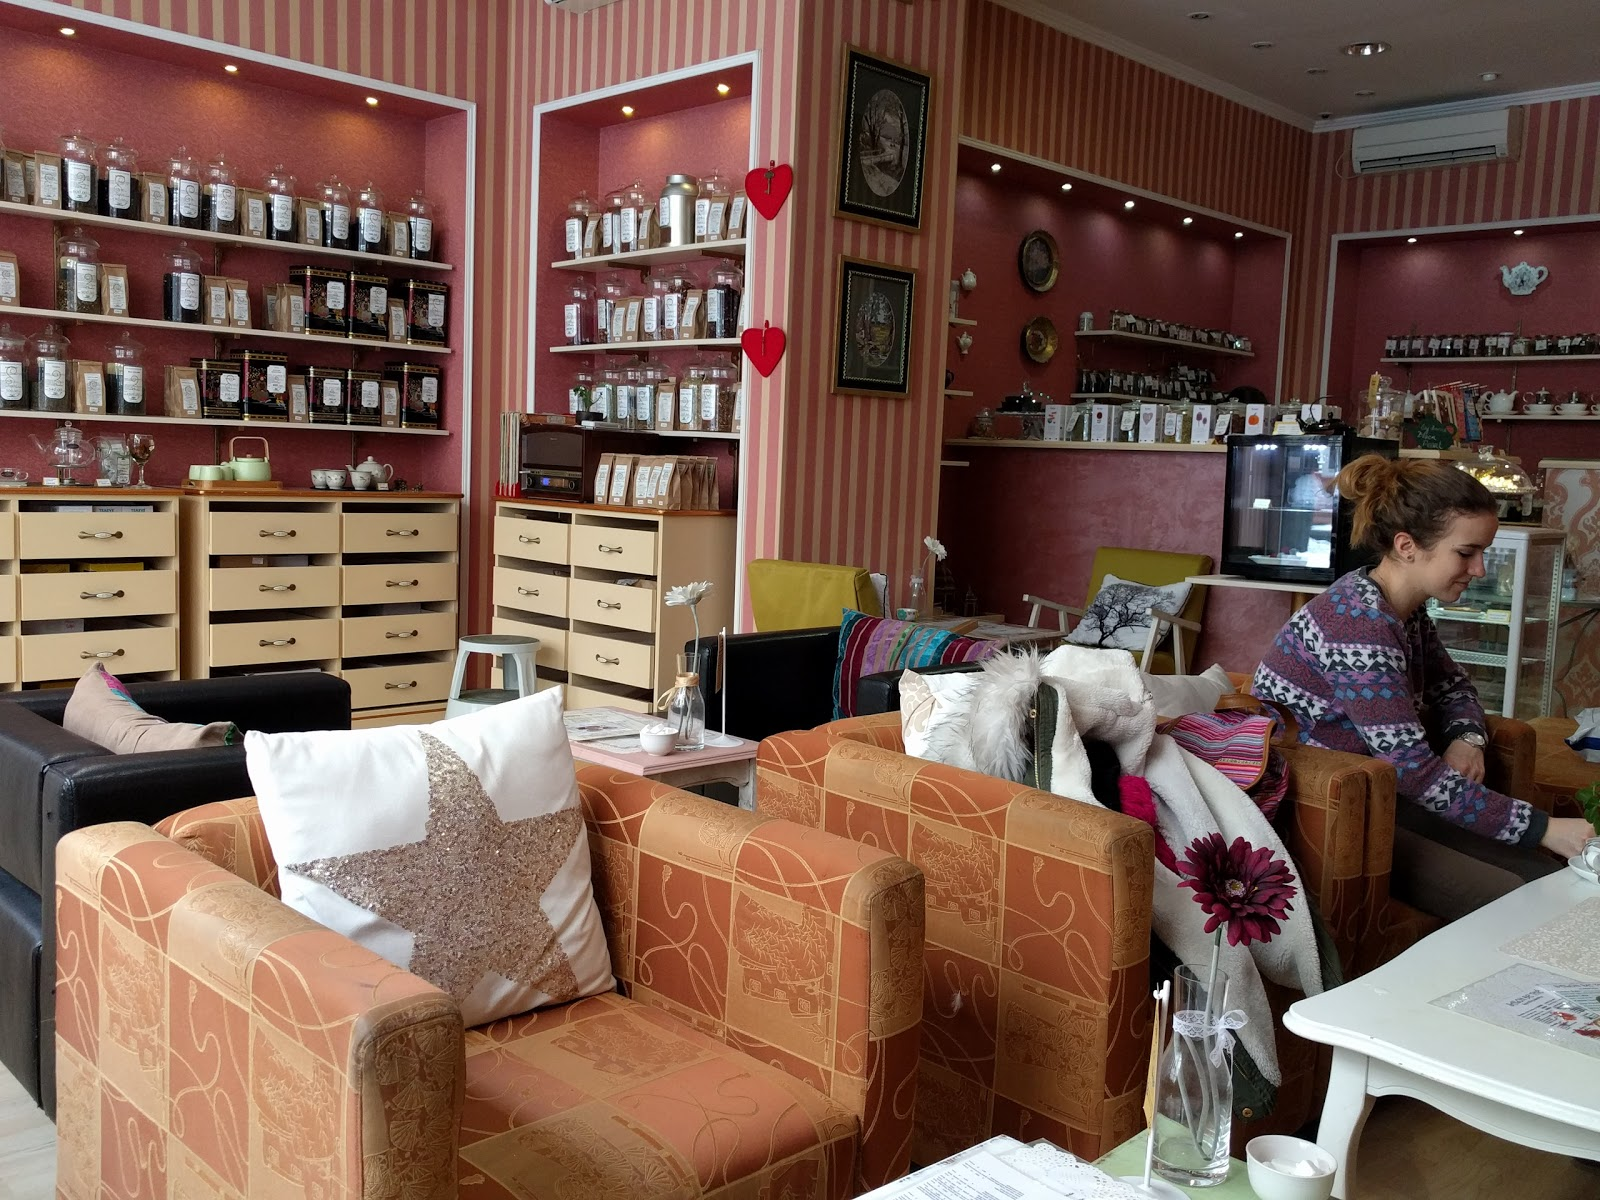 Salon de thé by Small Tree: A Work-Friendly Place in Belgrade